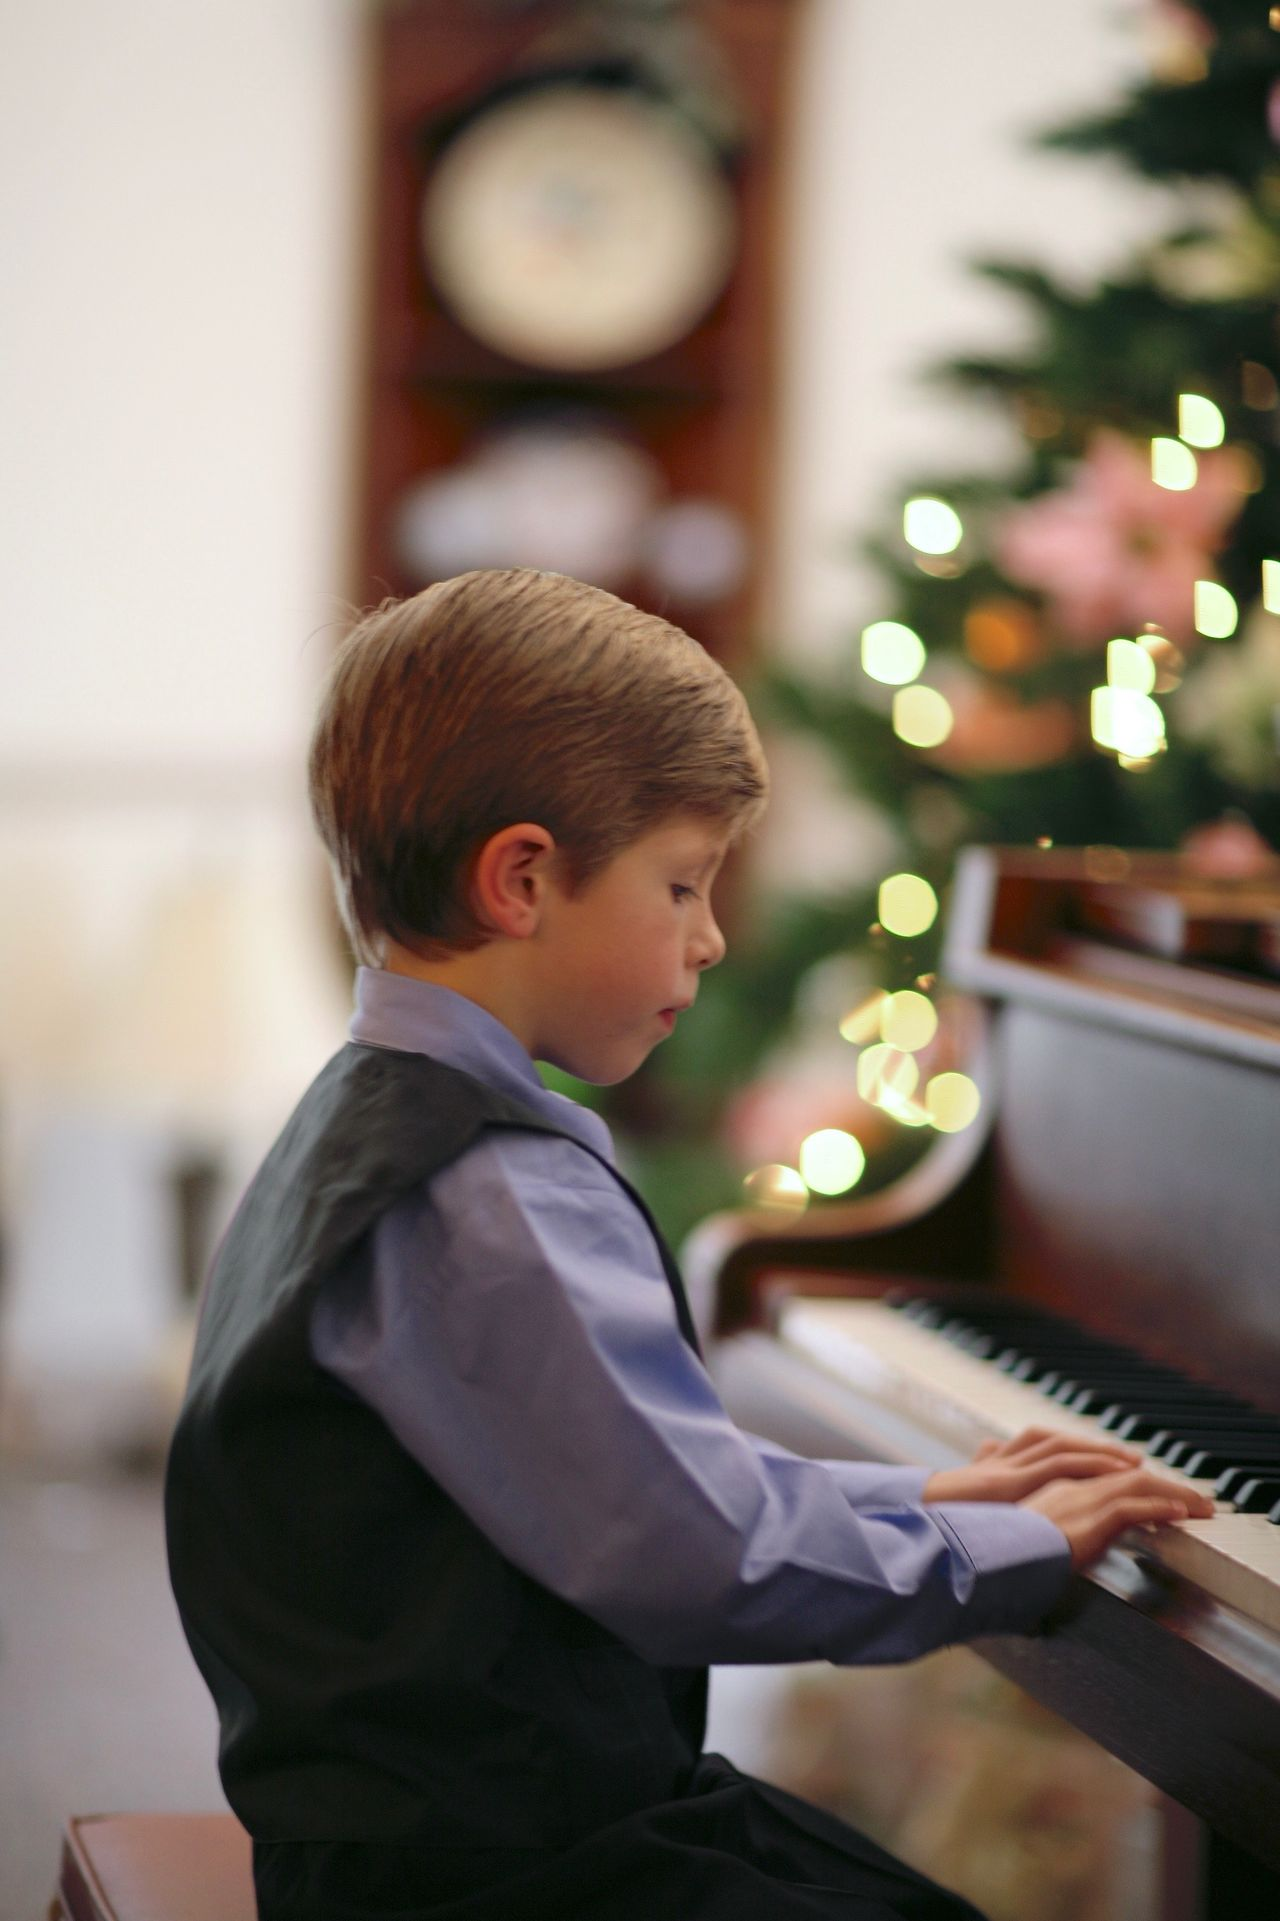 Boys Child Childhood Children Only Christmas Tree Close-up Day Domestic Life Indoors  Males  One Boy Only One Person People Piano Player Pre-adolescent Child Recital Side View